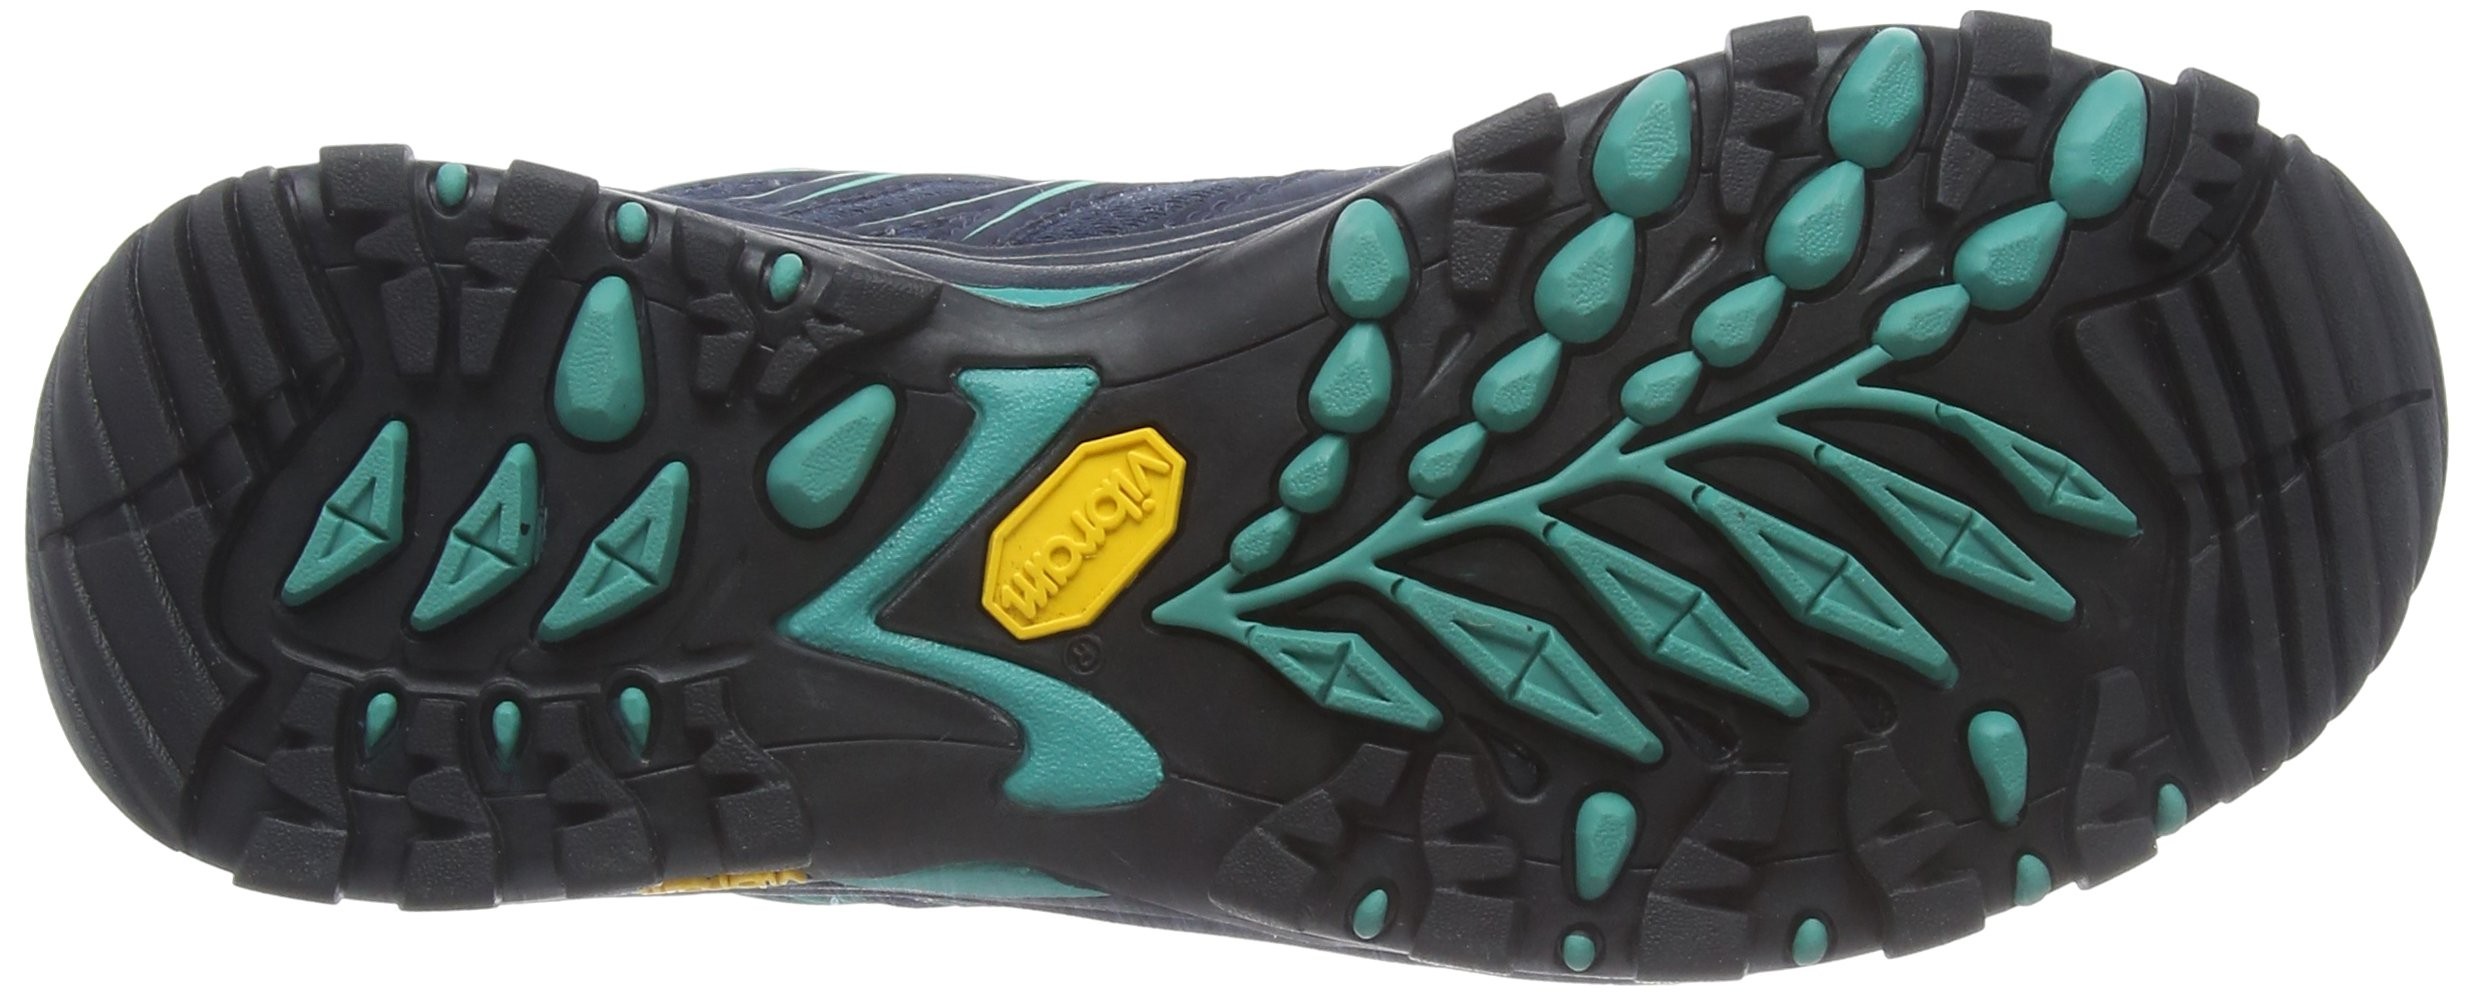 71MTfSt0peL - THE NORTH FACE Women's Hedgehog Fastpack Gore-tex (EU) Low Rise Hiking Boots